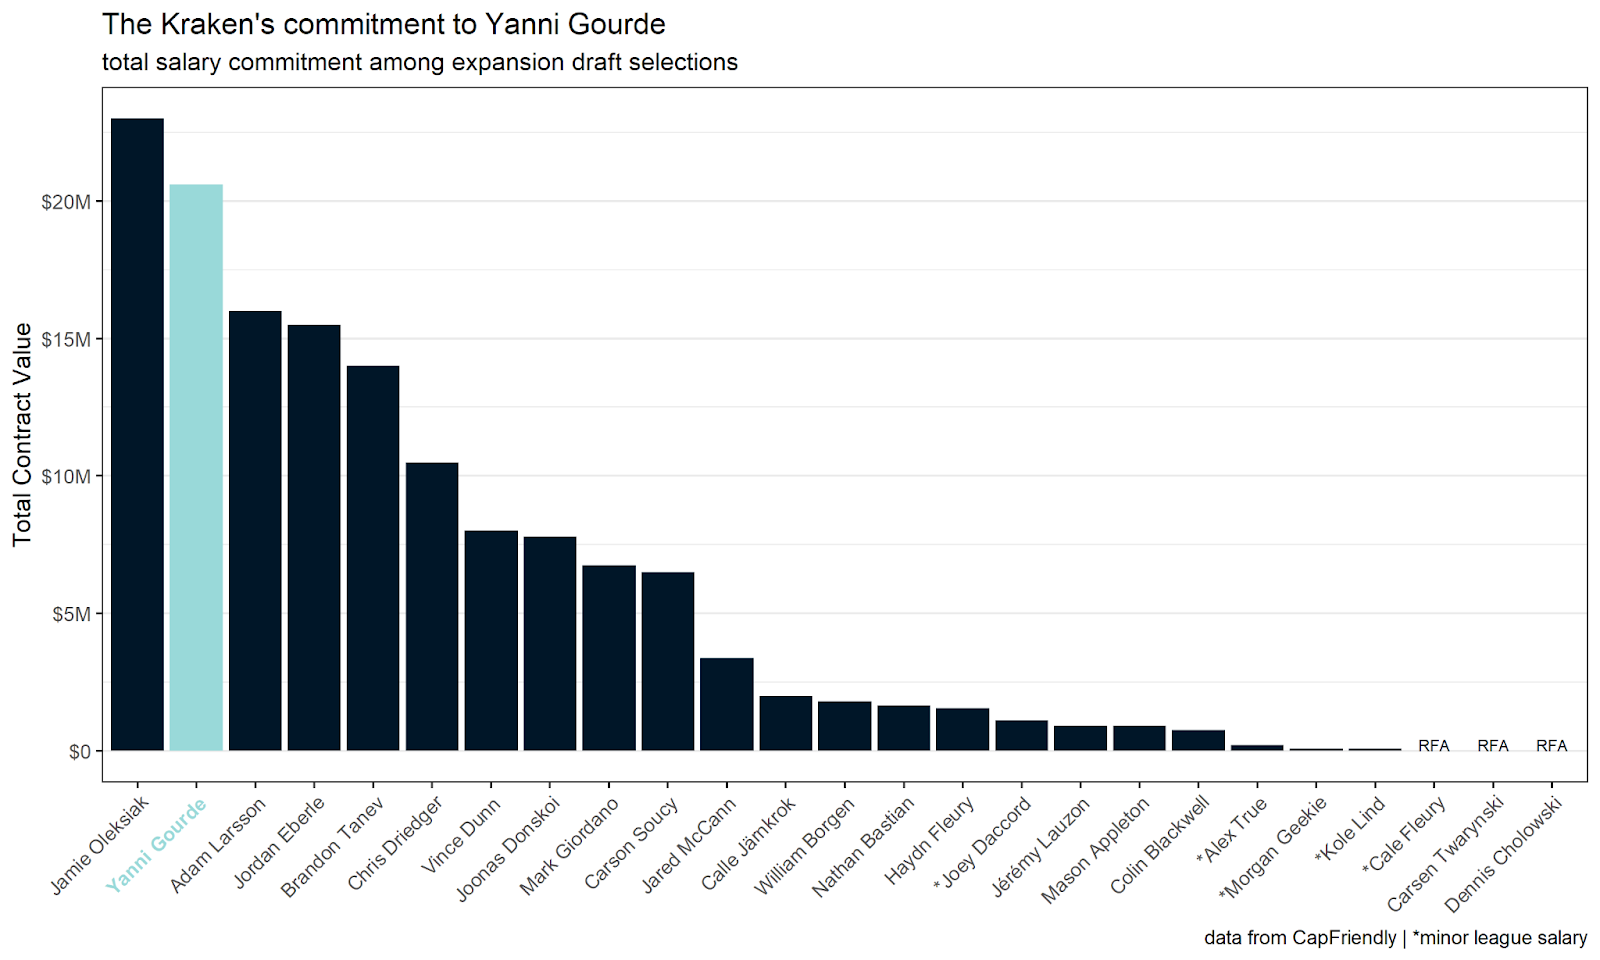 A bar chart highlighting Yanni Gourde as the second-highest salary commitment by the Kraken at the expansion draft